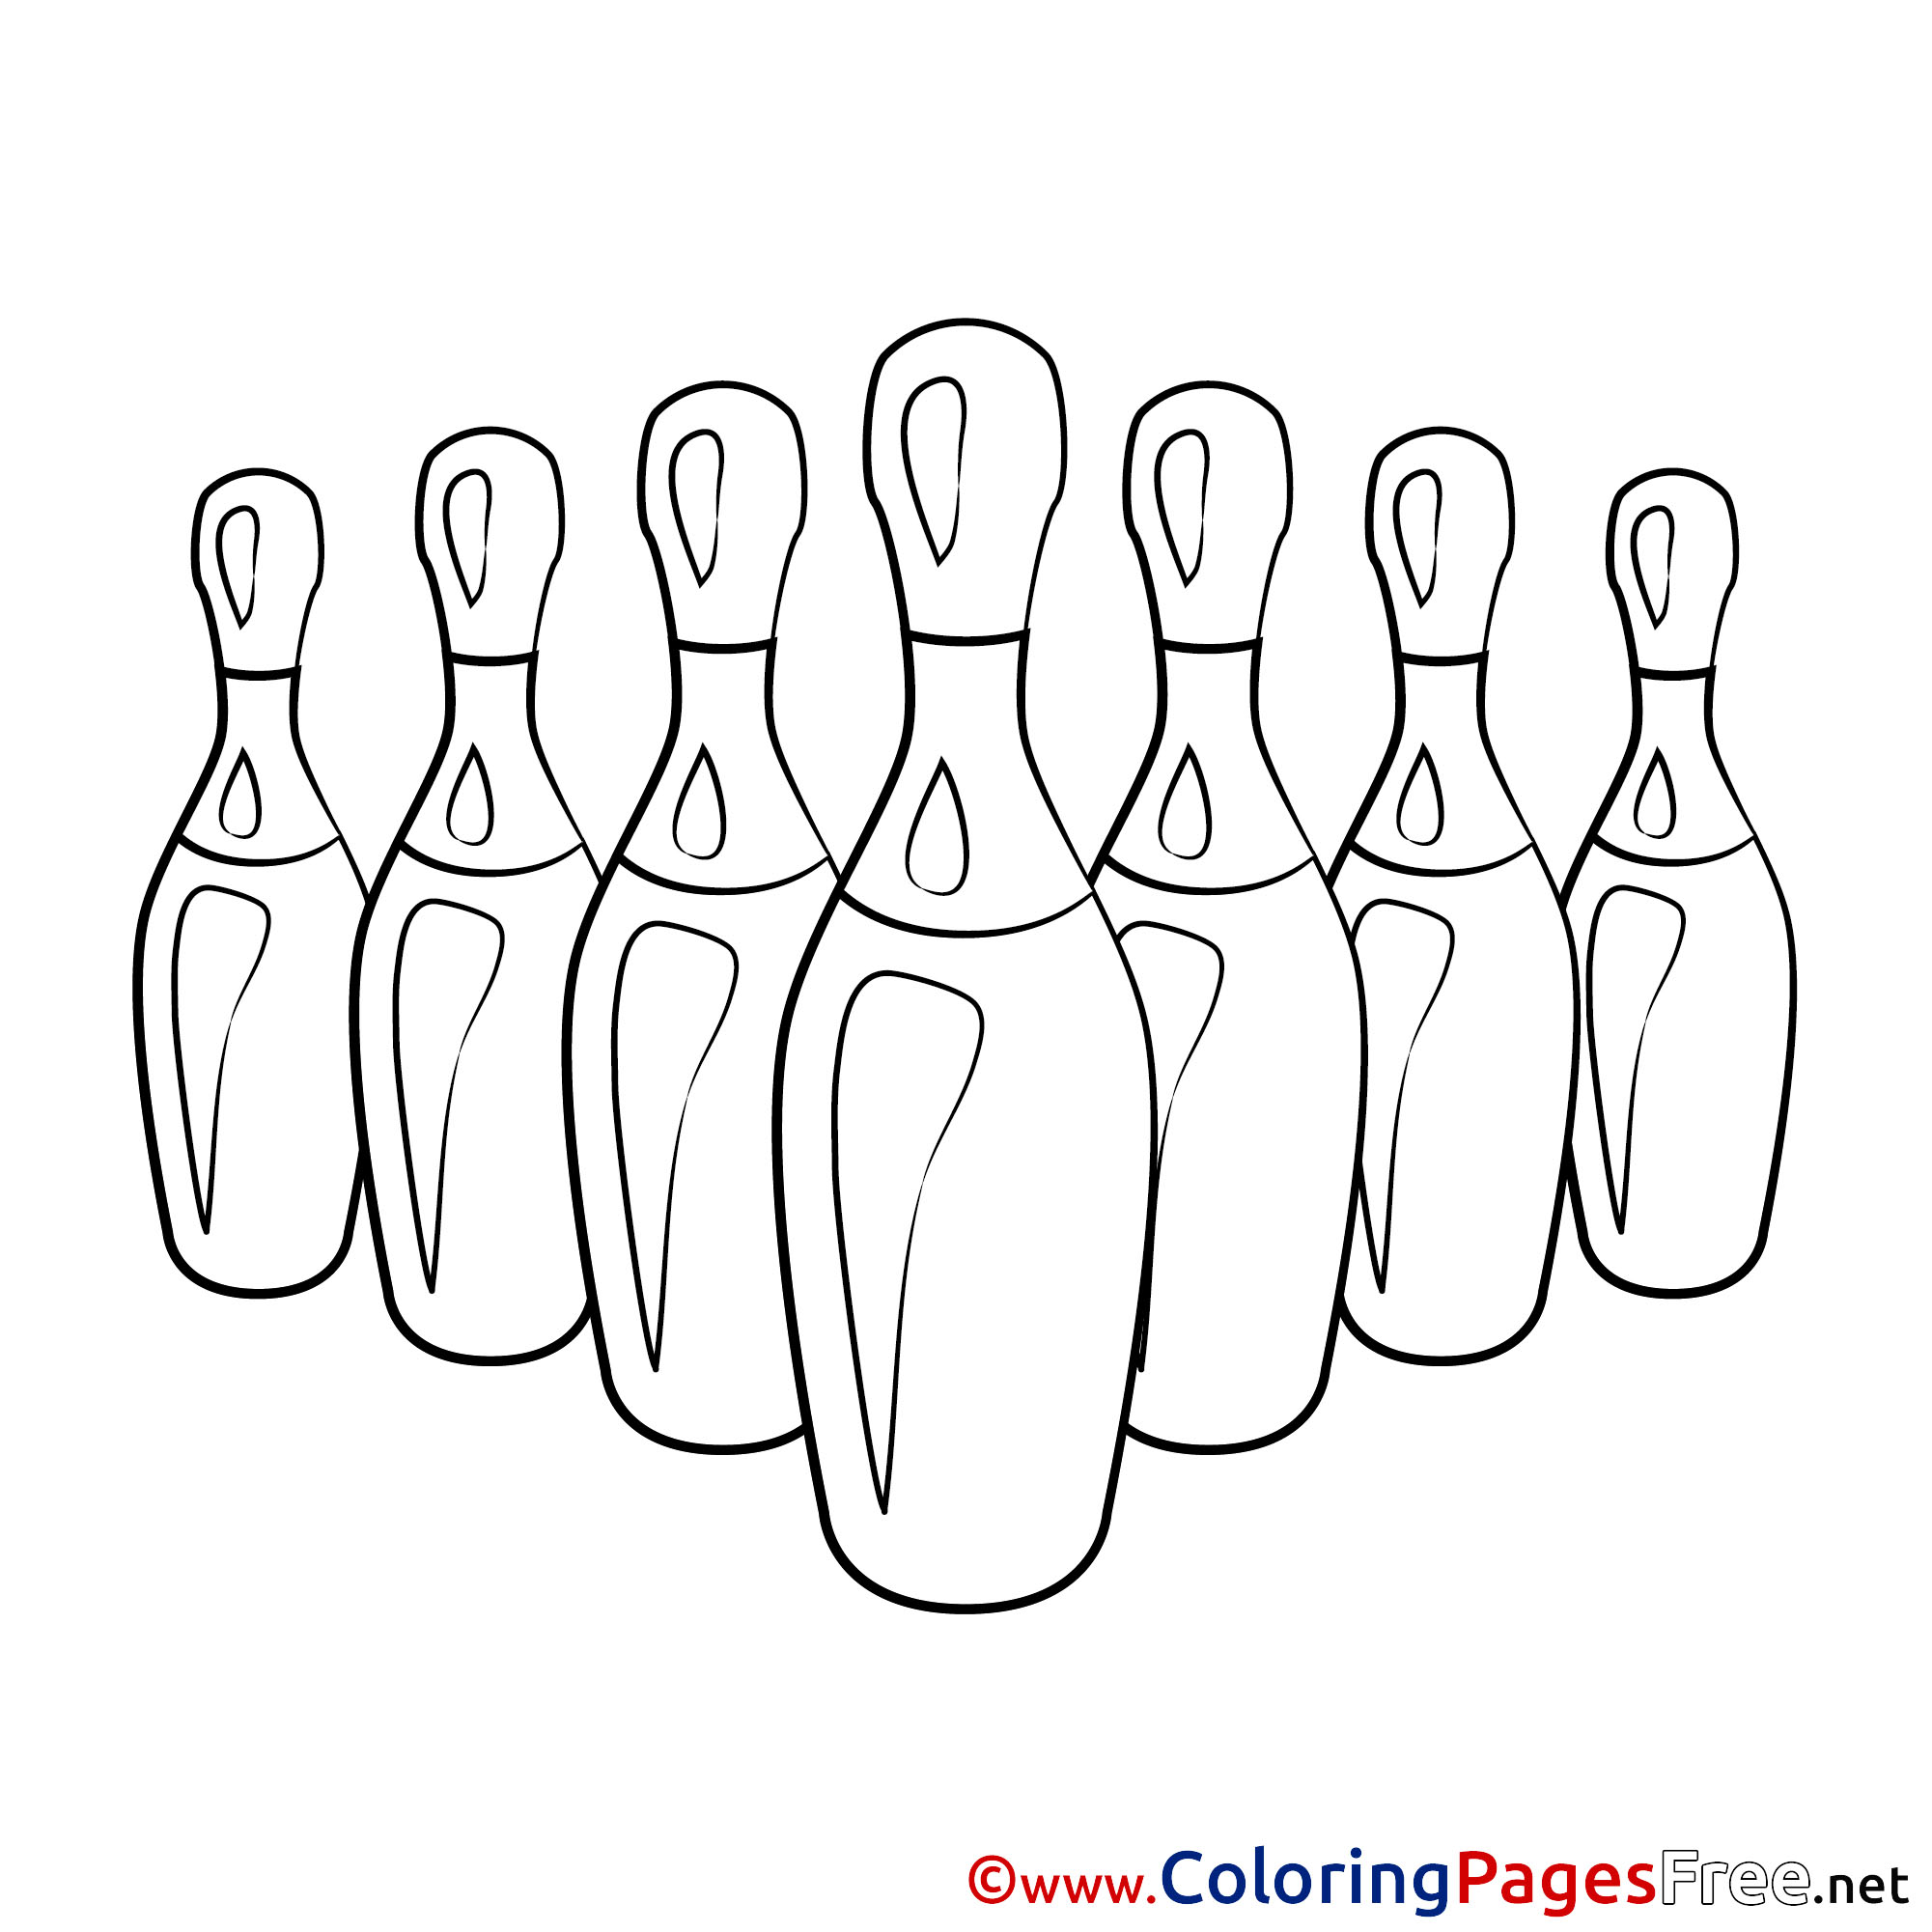 Skittles for Children free Coloring Pages